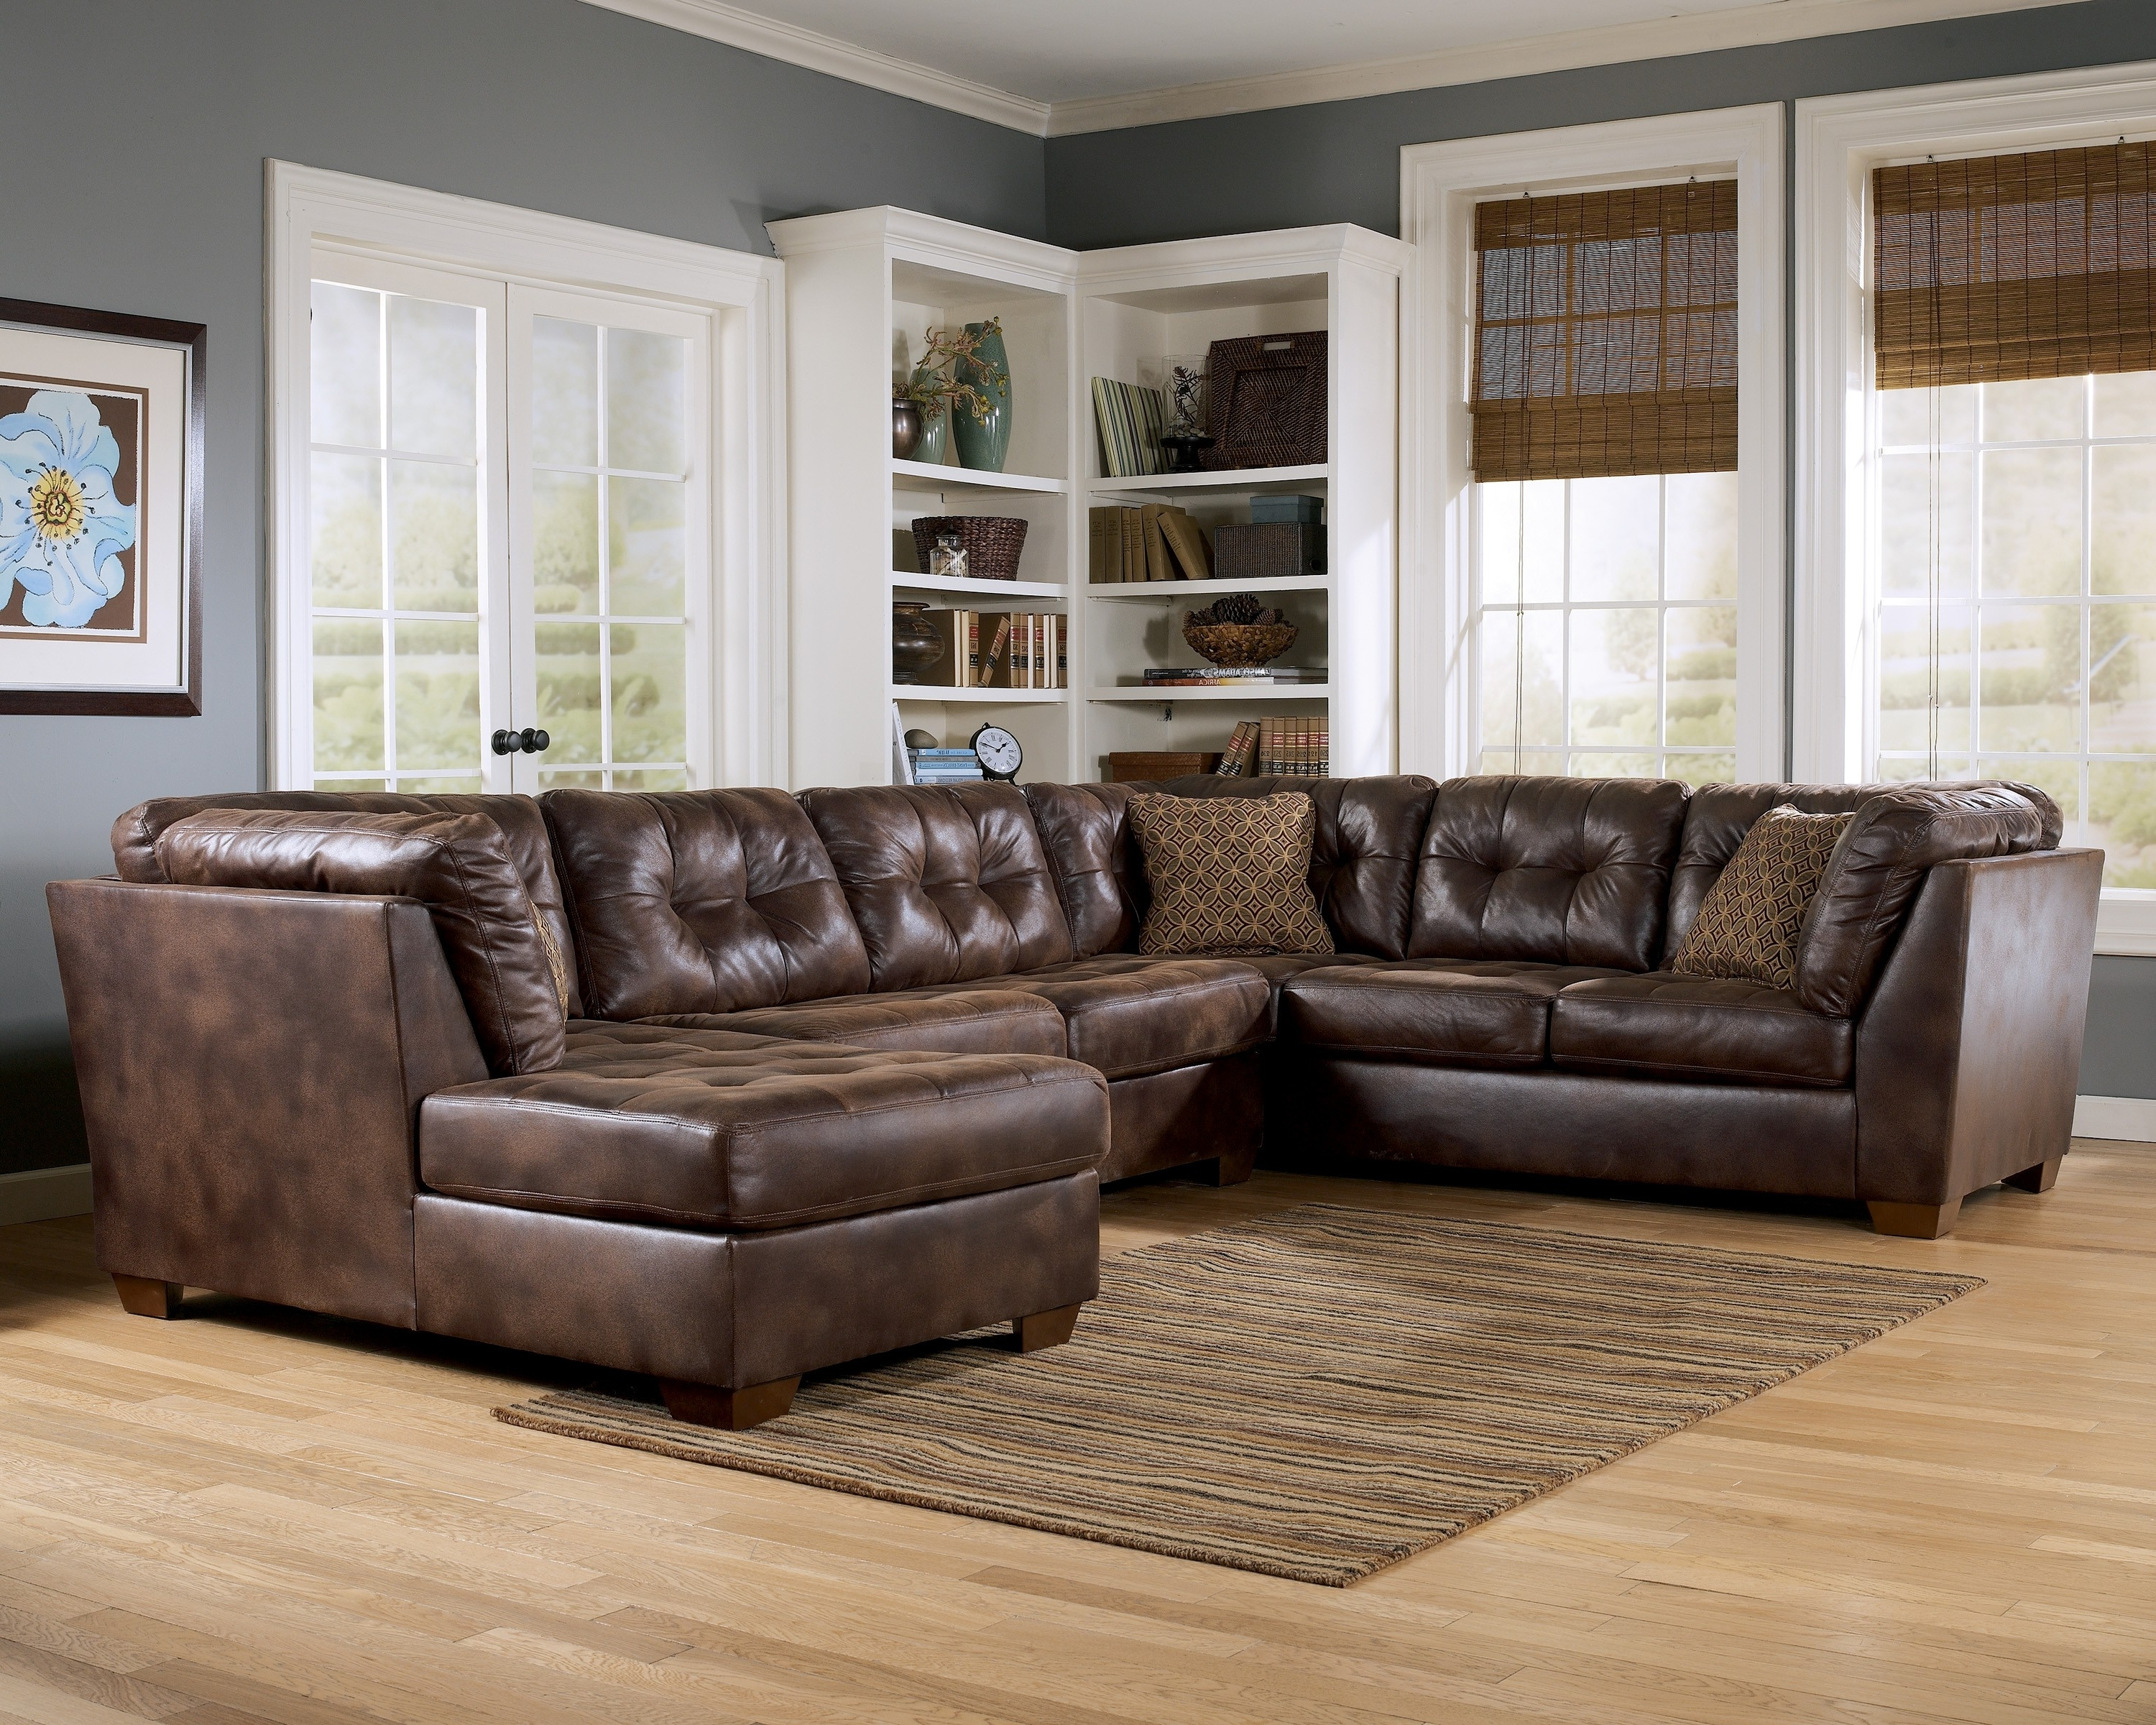 Most Popular Beautiful Cozy Sectional Sofas 54 About Remodel Sectional Sofas Inside Cozy Sectional Sofas (View 14 of 20)